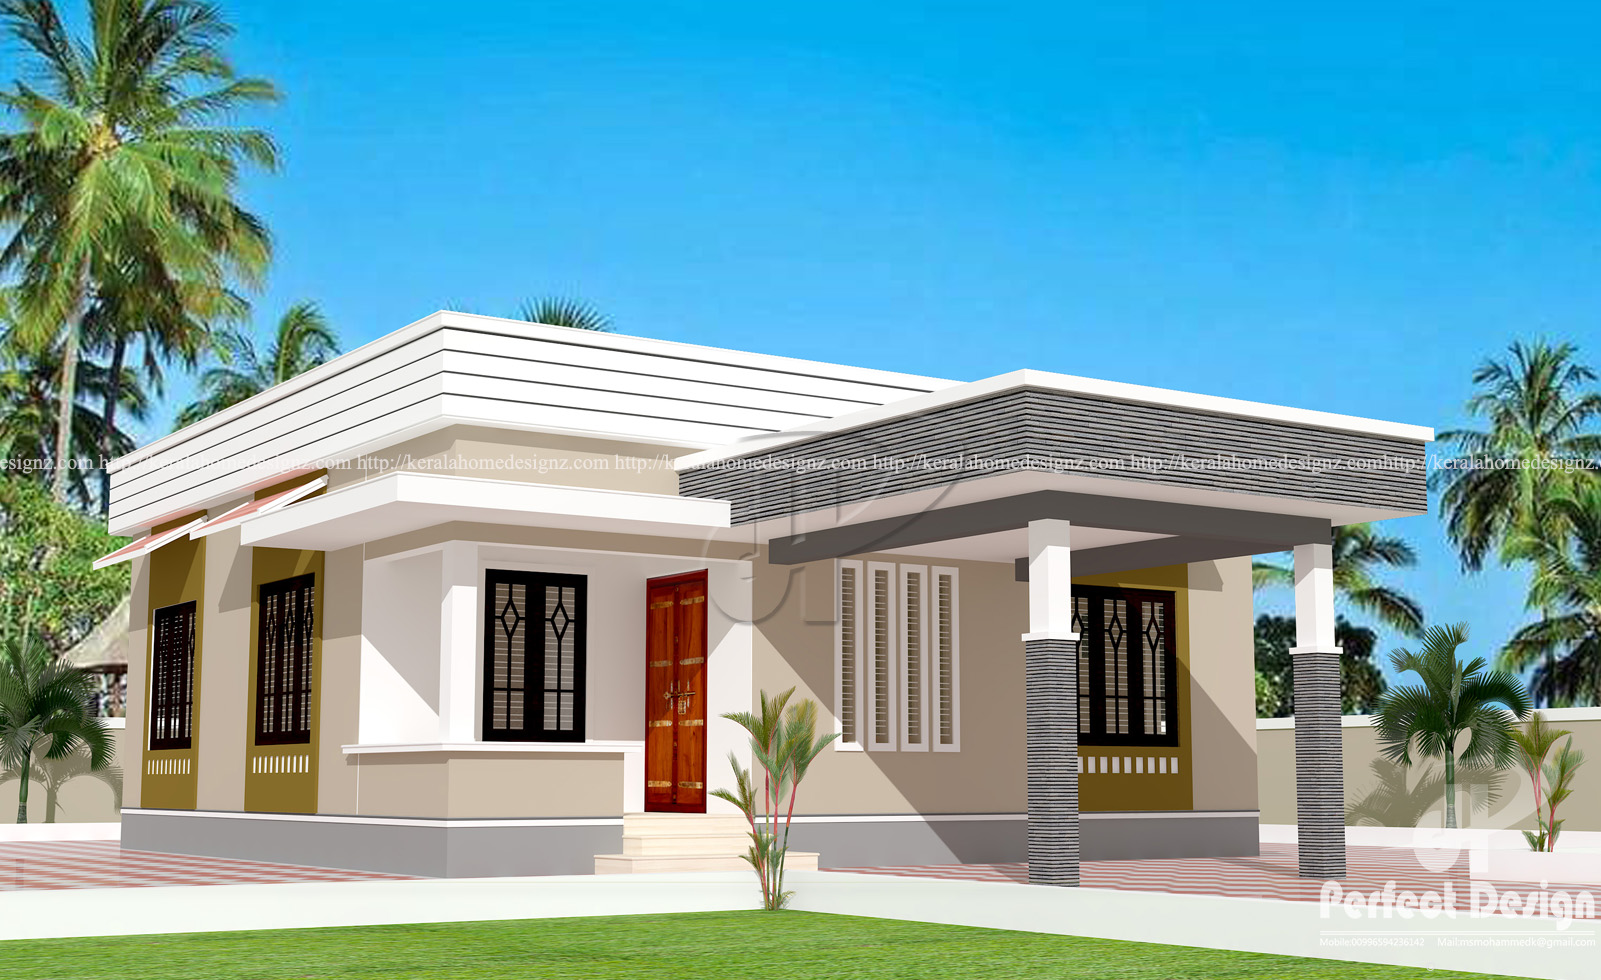 829 sq ft low cost home designs kerala home design for Home designs and plans